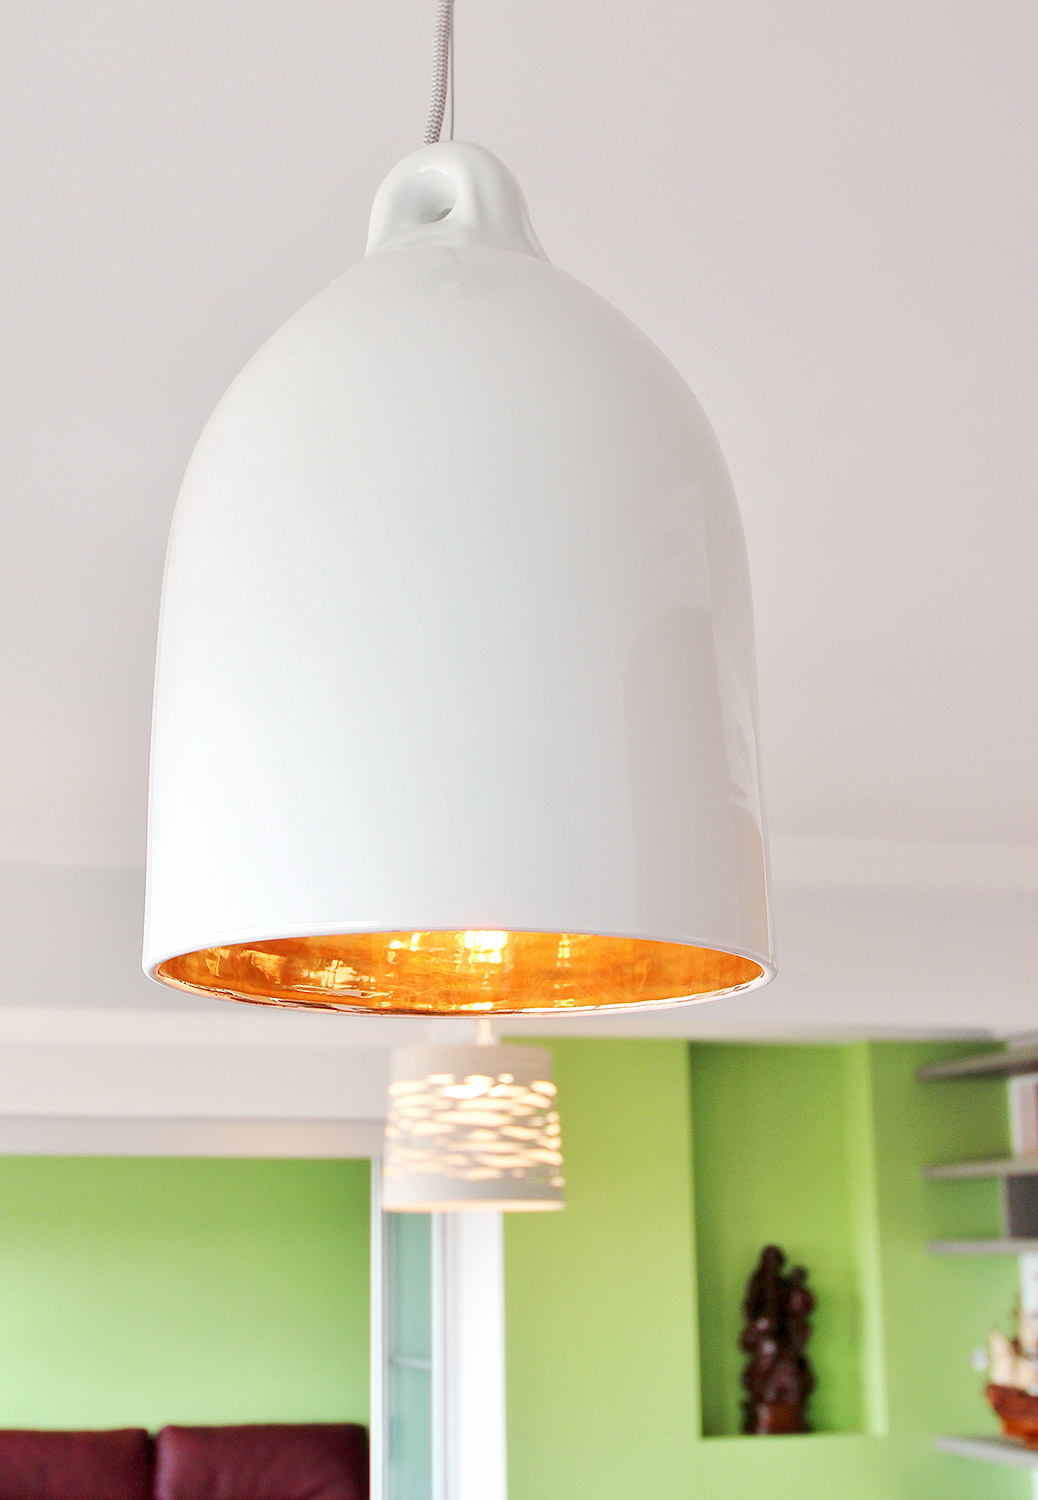 luminaire porcelaine or agence avous